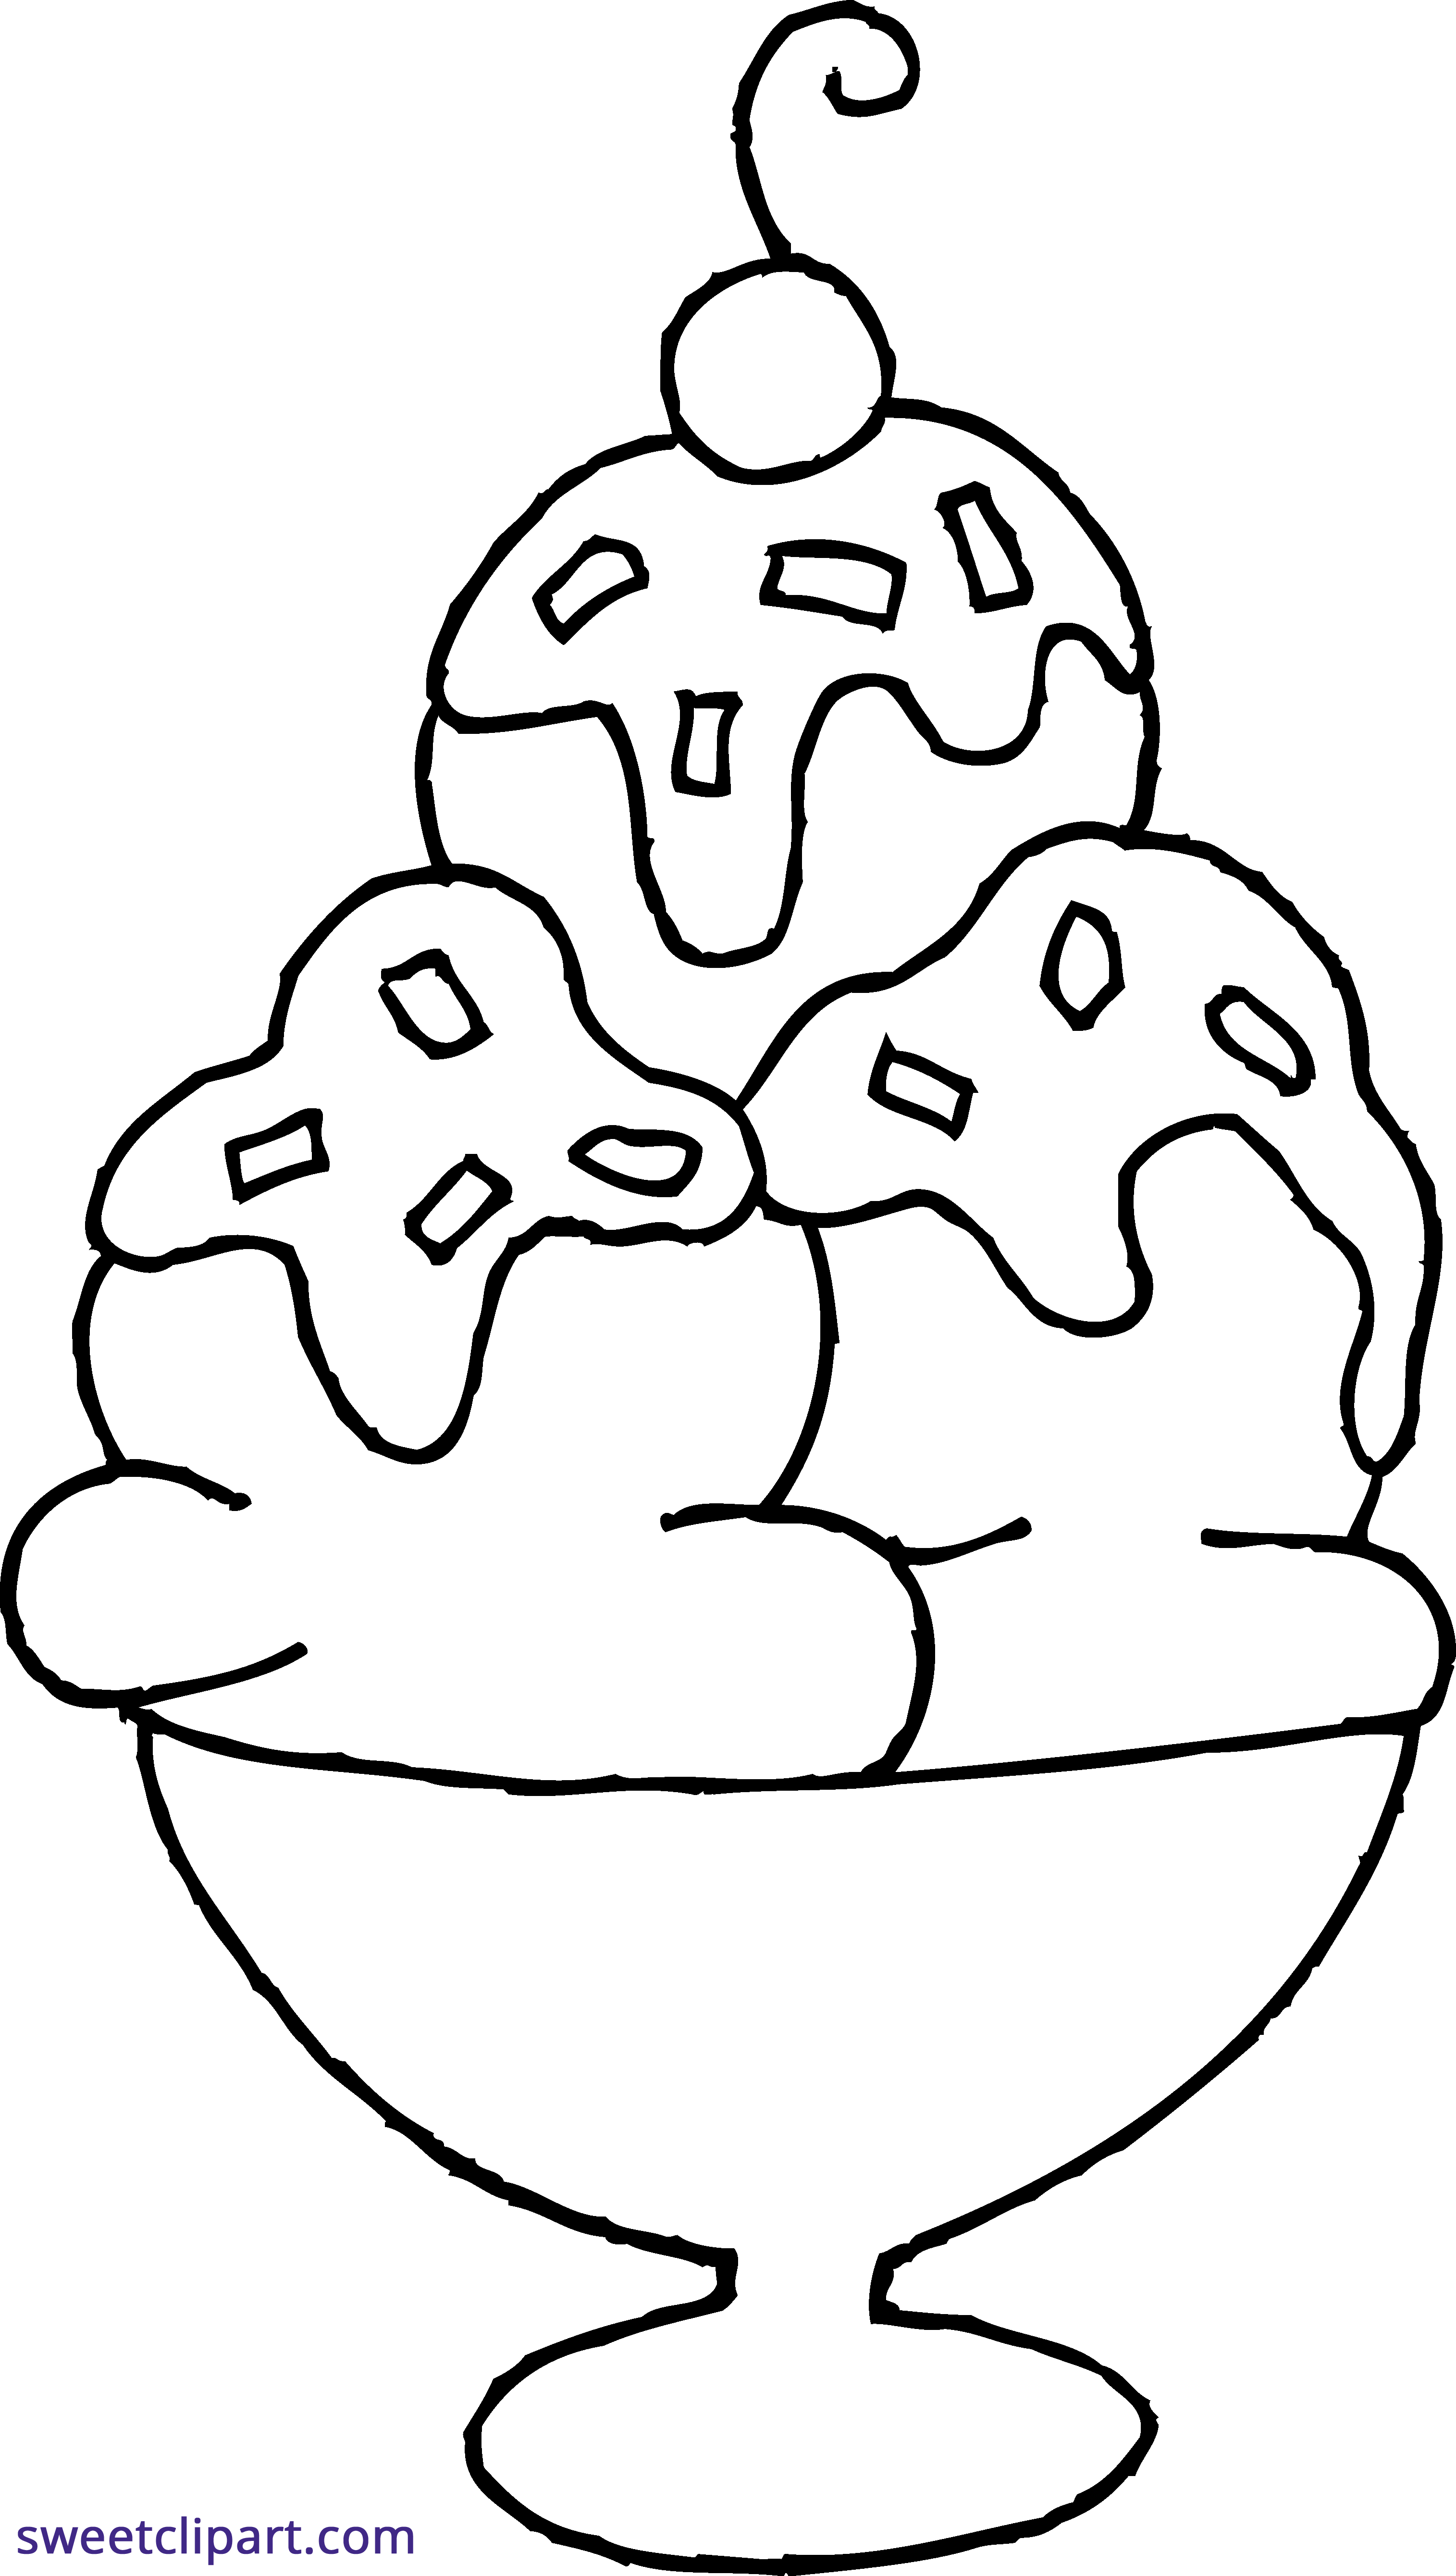 Sundae coloring page sweet. White clipart ice cream